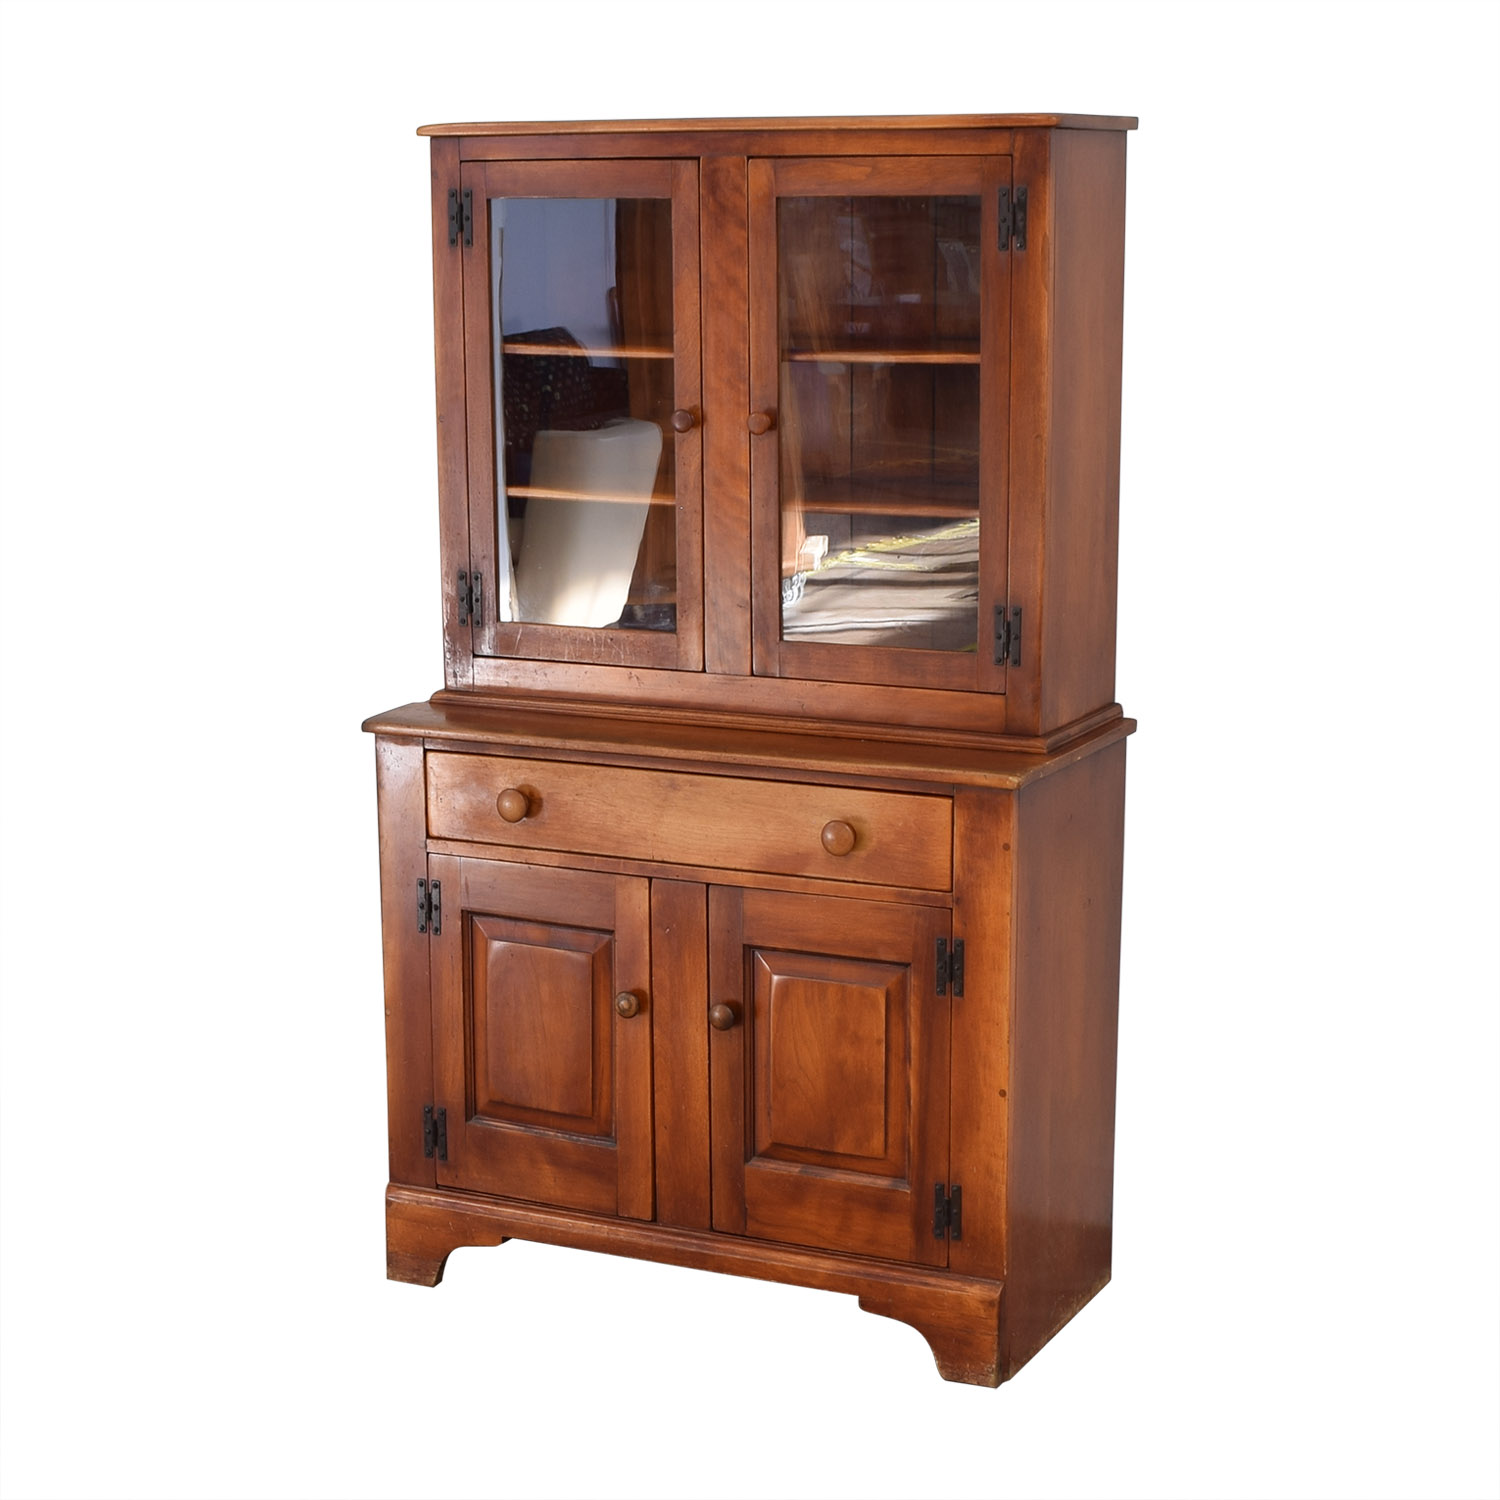 Cushman Colonial China Cabinet with Hutch / Storage